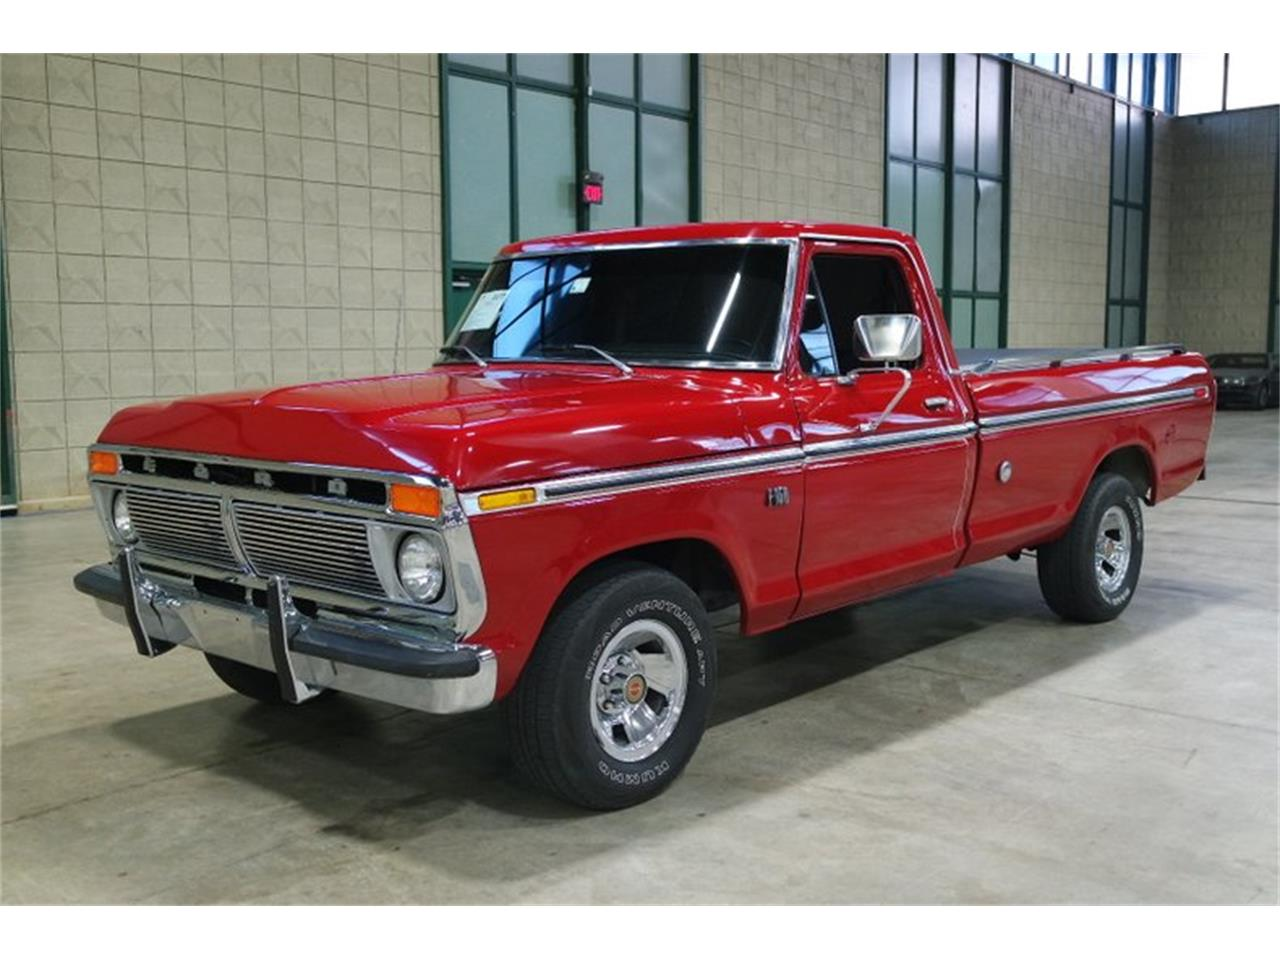 Large Picture of 1976 F150 located in Tulsa Oklahoma Auction Vehicle Offered by Leake Auction Company - Q1T5